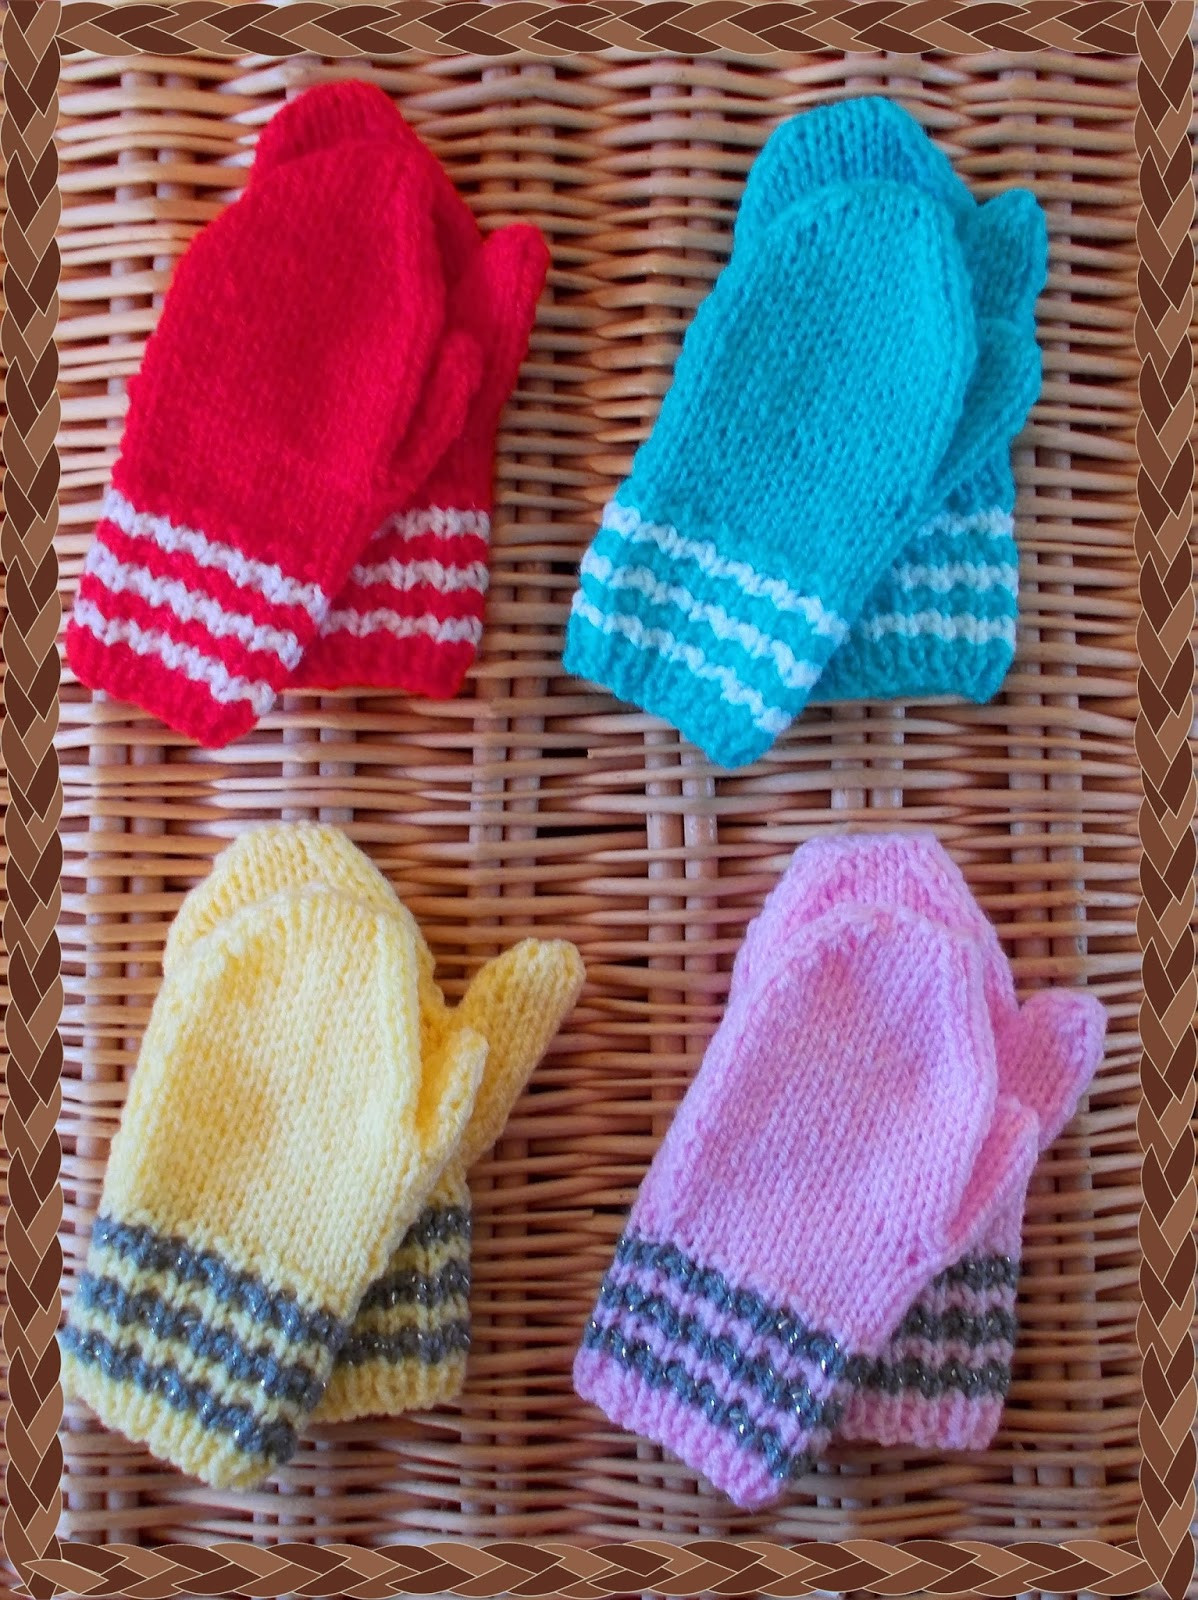 Knitting Patterns for toddlers Lovely Baby Mittens Knitting Patterns Of Awesome 49 Images Knitting Patterns for toddlers